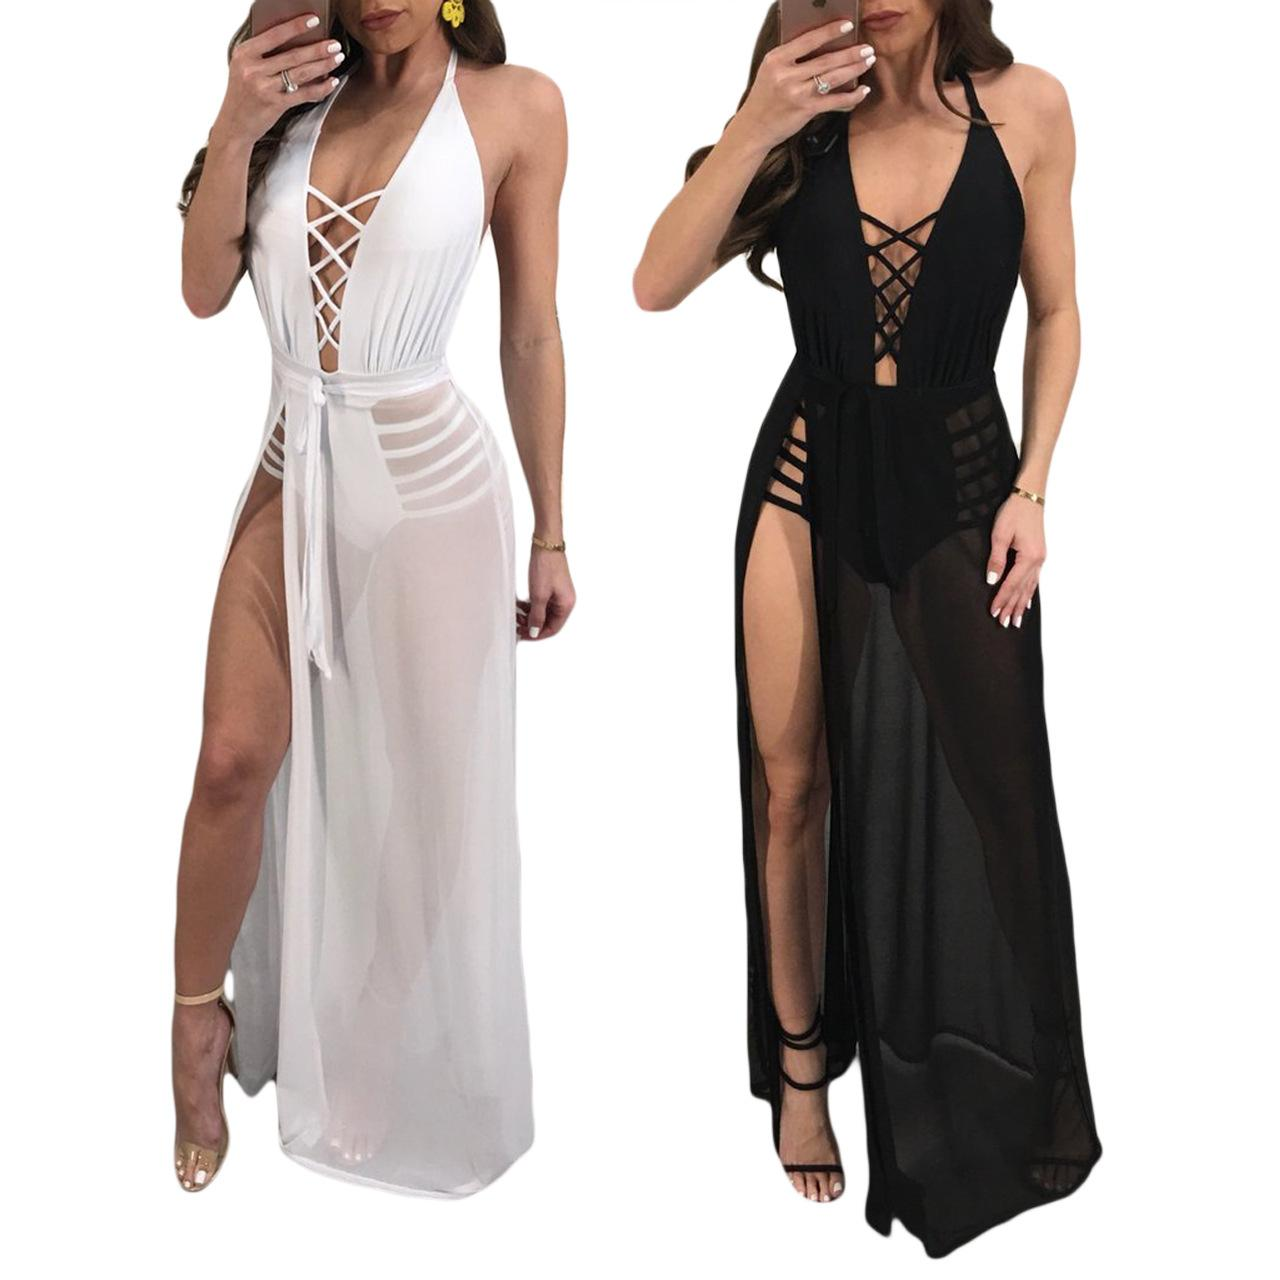 a369d5e174 2019 Women Sexy Halter Bandage Dresses Mesh Perspective Lace Up Deep V Neck  Backless High Split Club Party Beach Maxi Dress Covers Up From  Chenyuanfang